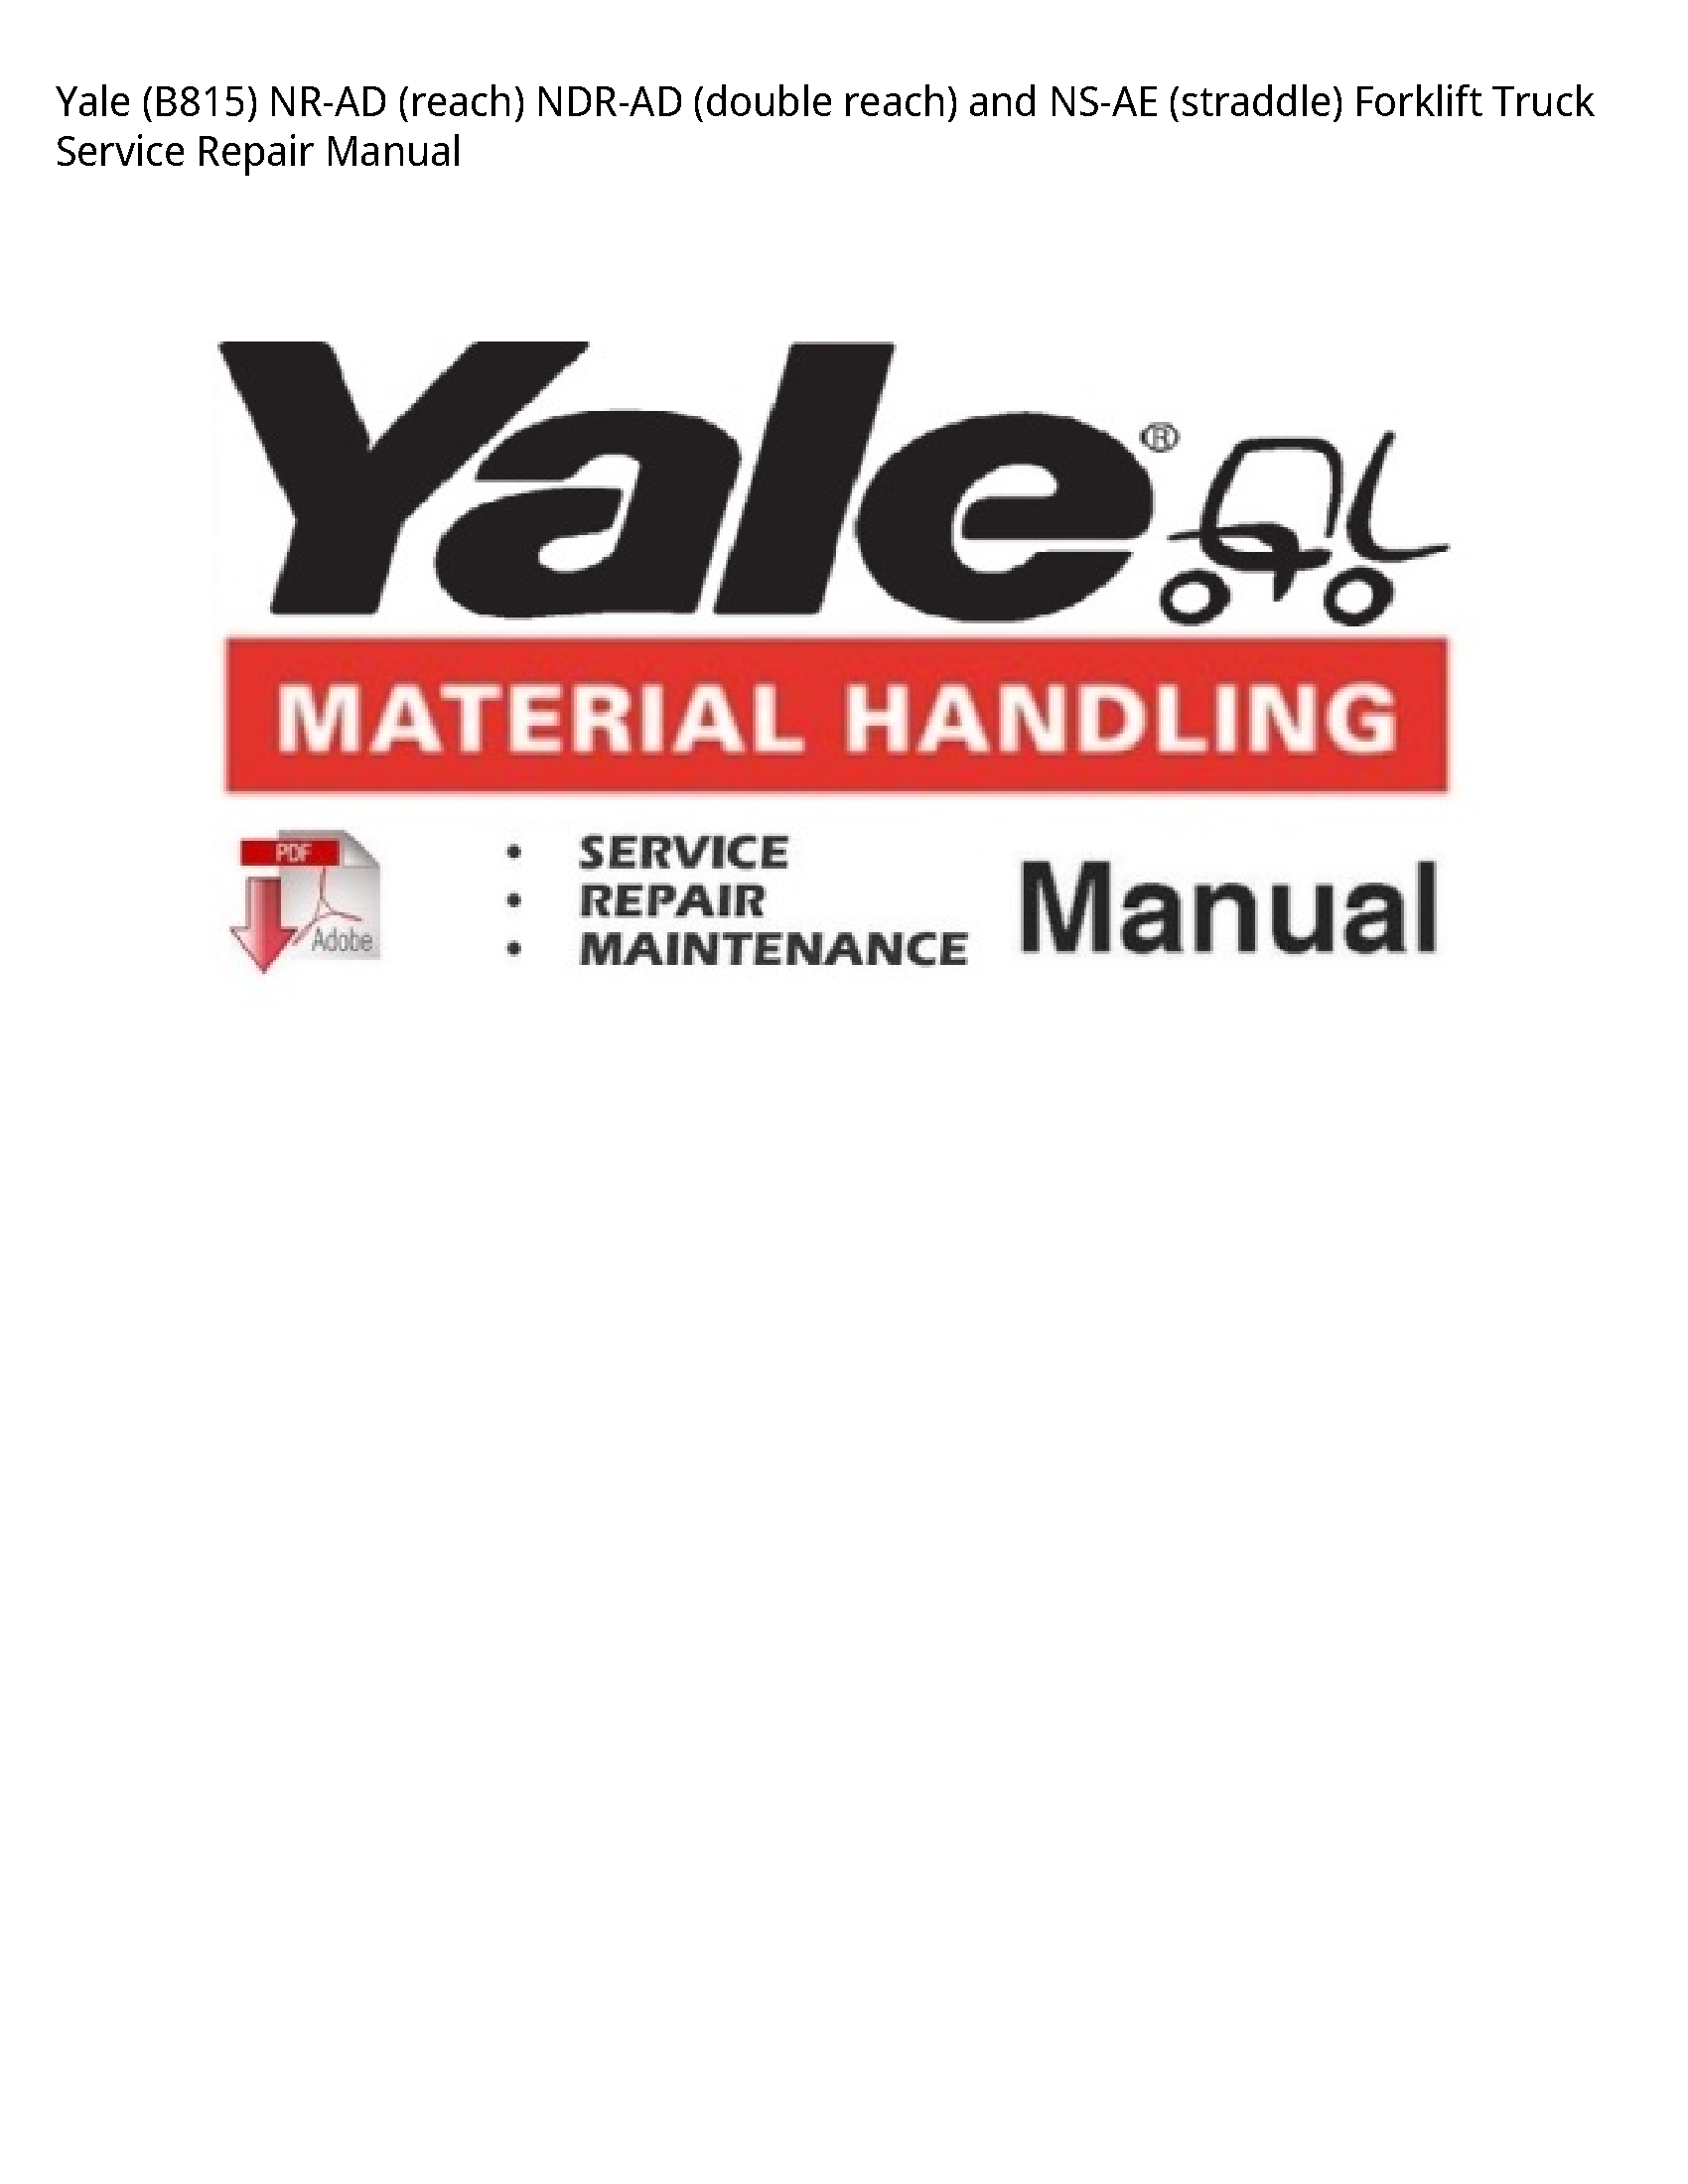 Yale (B815) NR-AD (reach) NDR-AD (double reach)  NS-AE (straddle) Forklift Truck manual